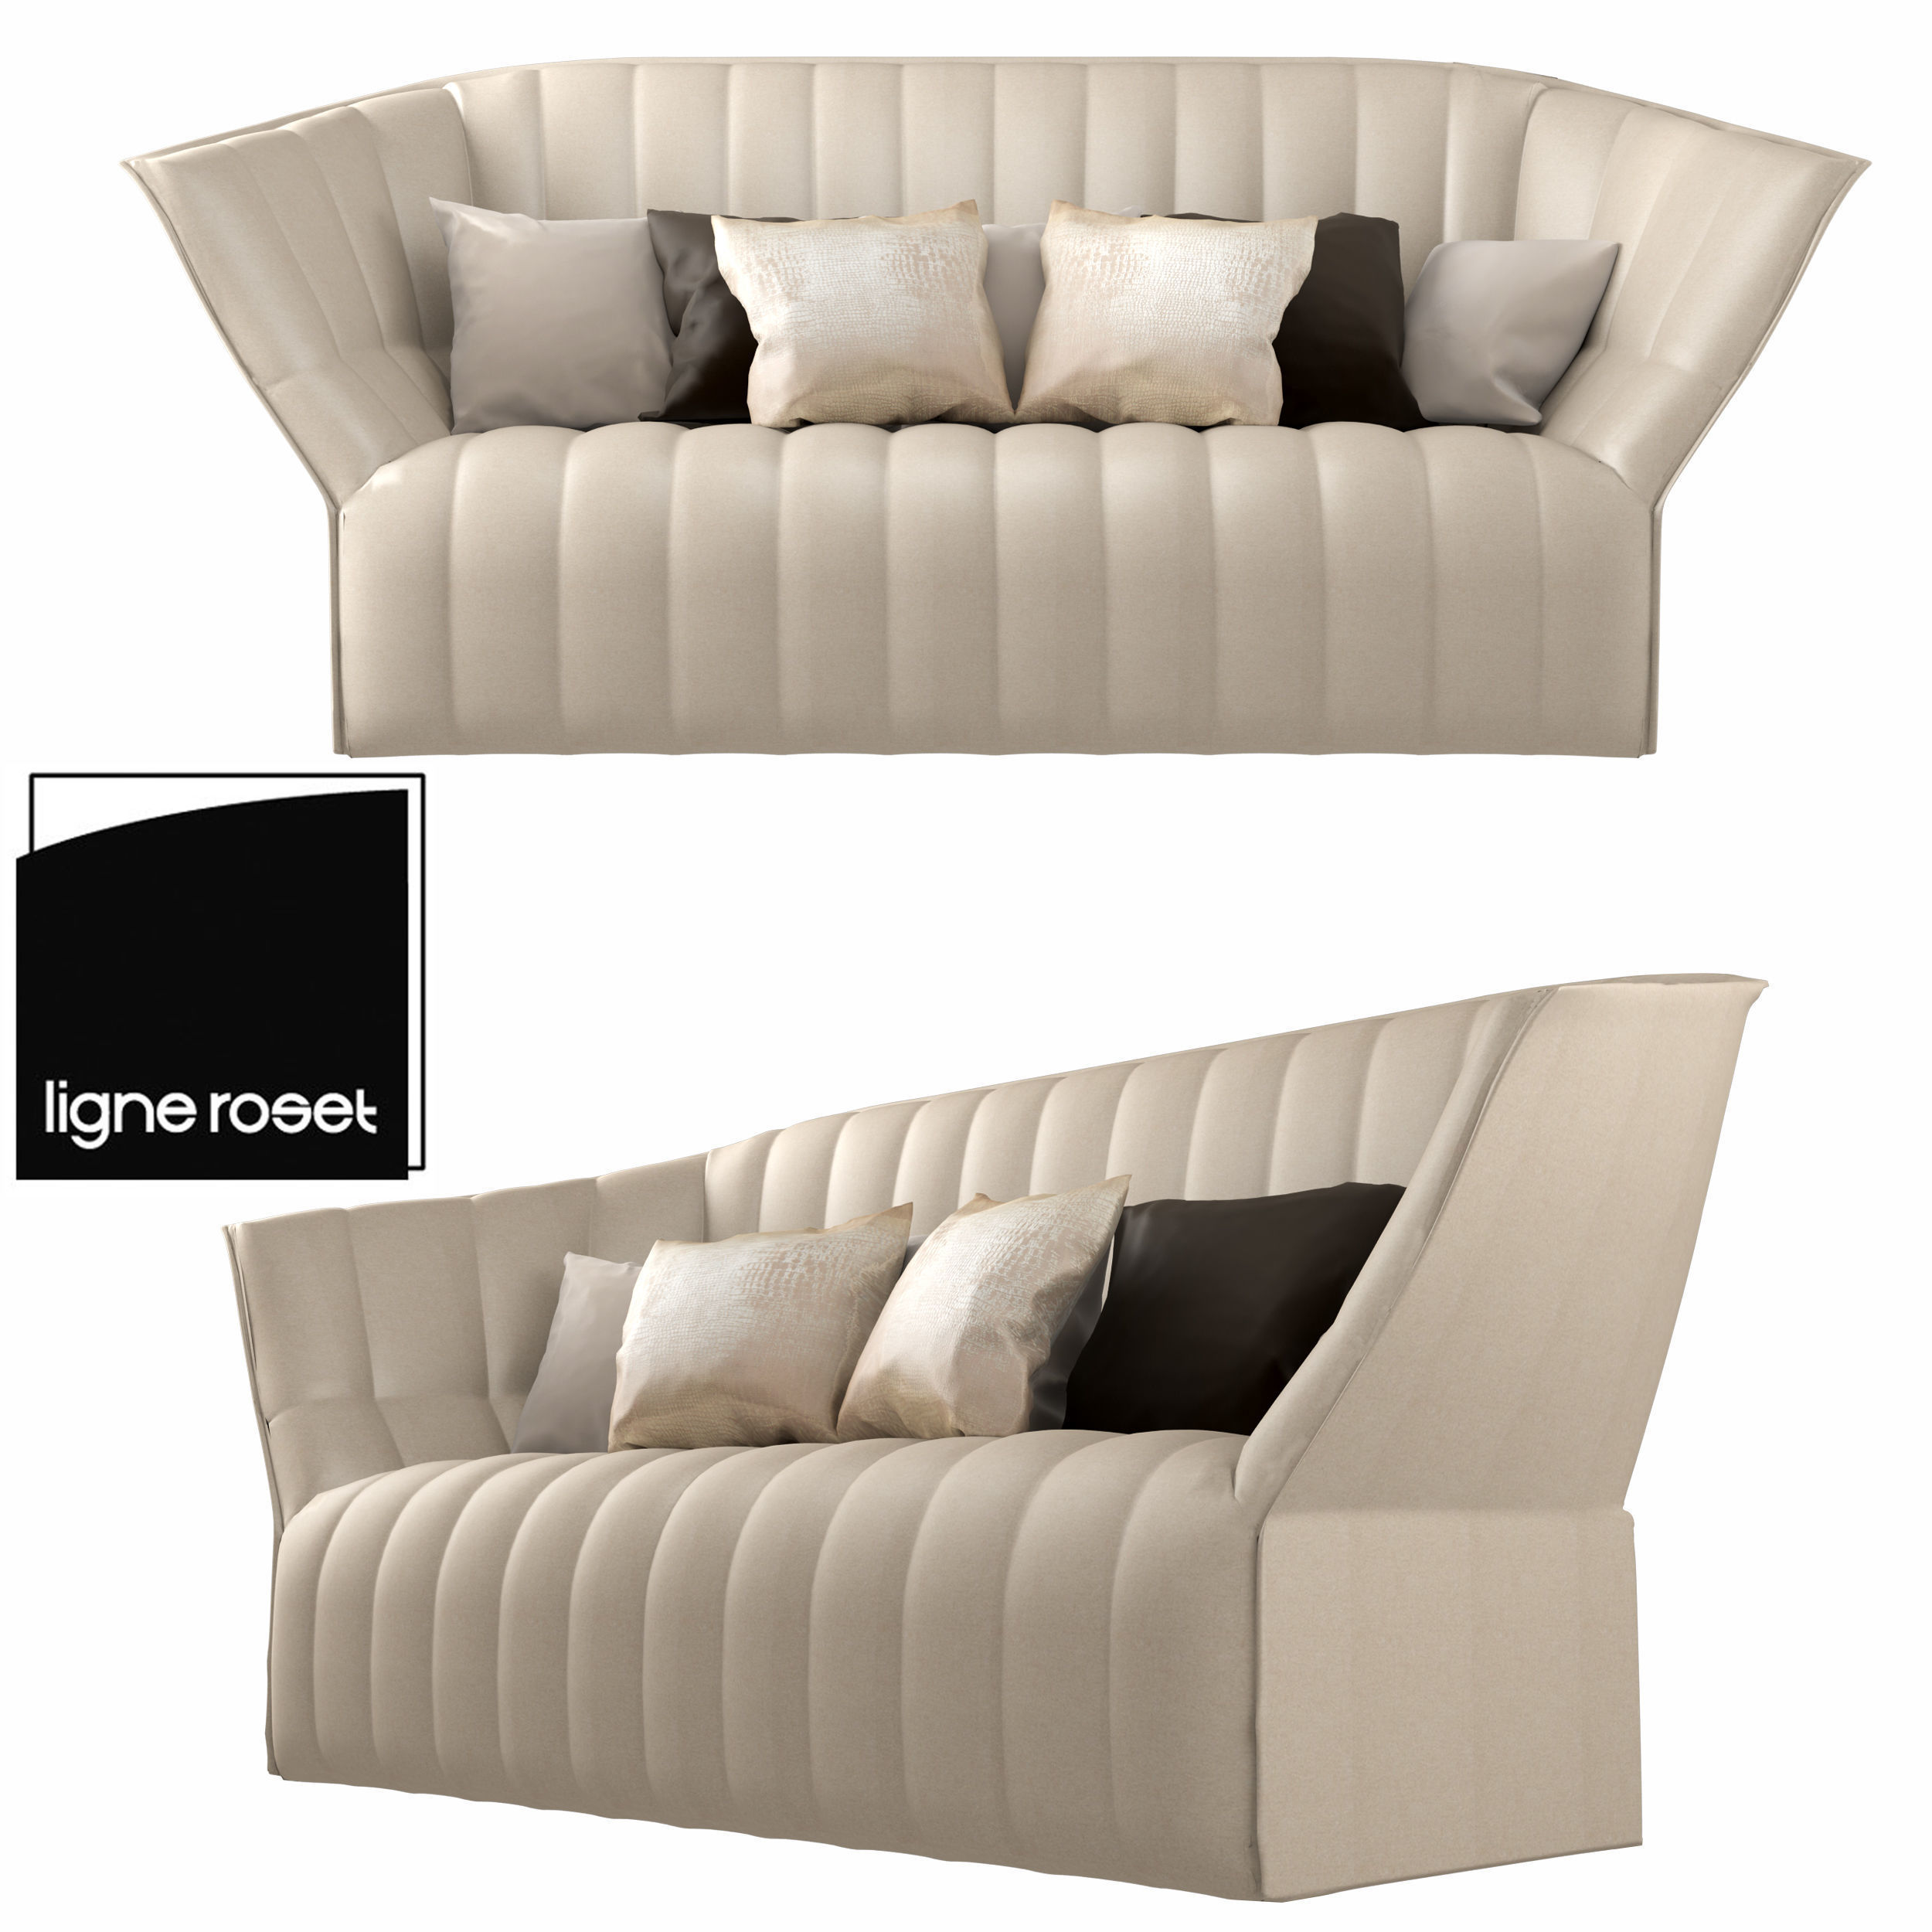 luxury ligne roset sofa inspiration-Fascinating Ligne Roset sofa Gallery